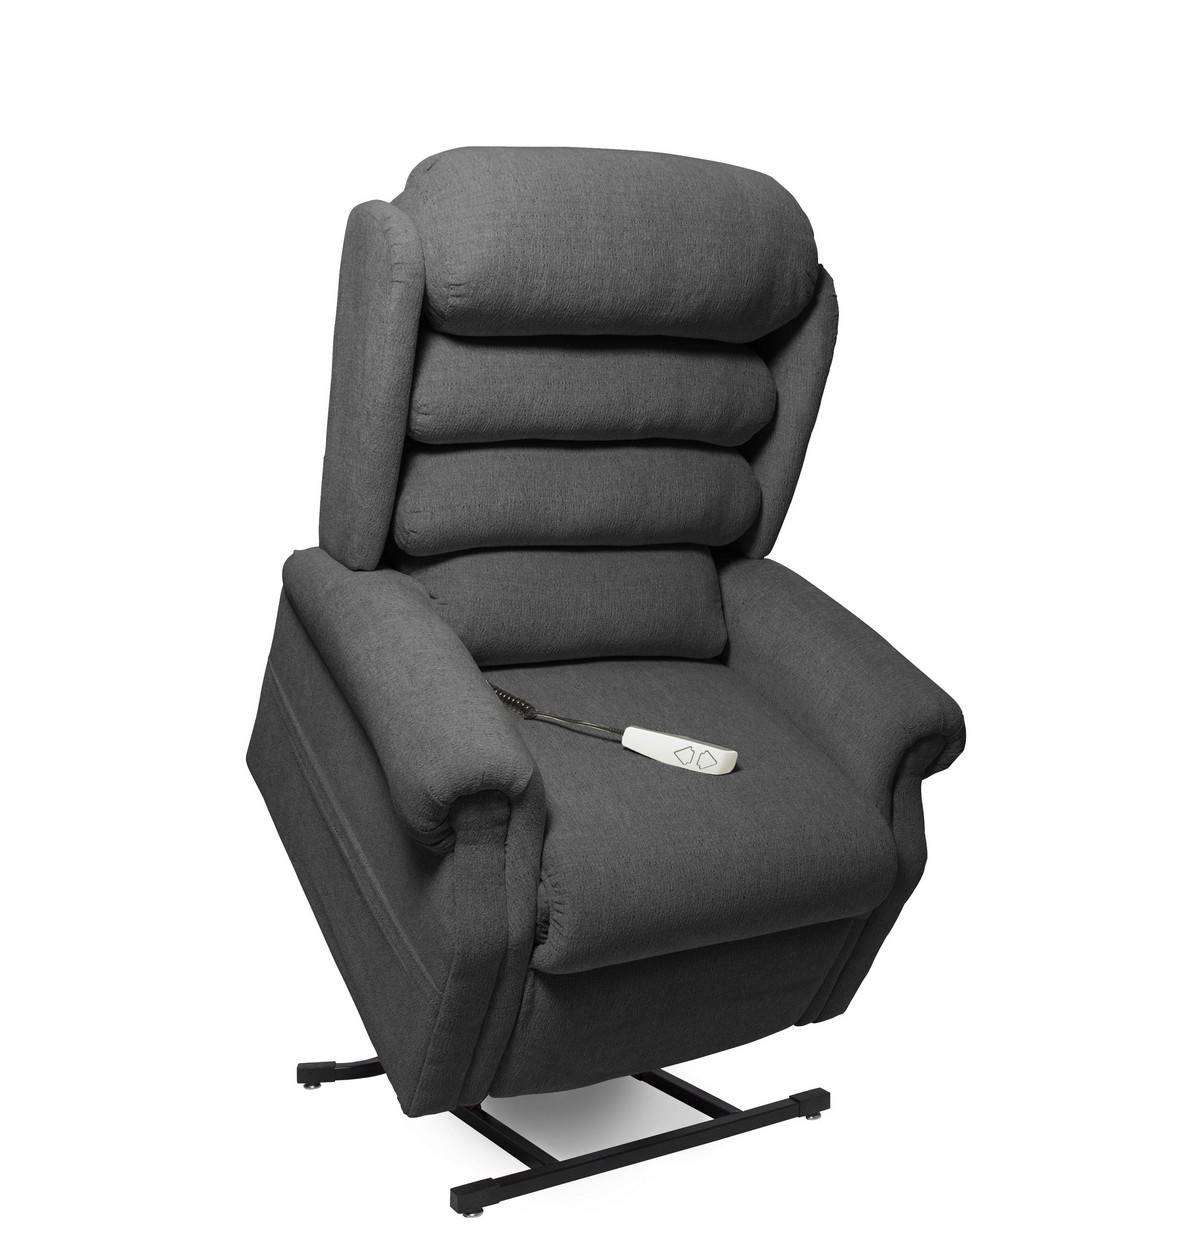 Mega Motion NM1950 Stellar 3-Position Power Lift Chaise Recliner - Charcoal